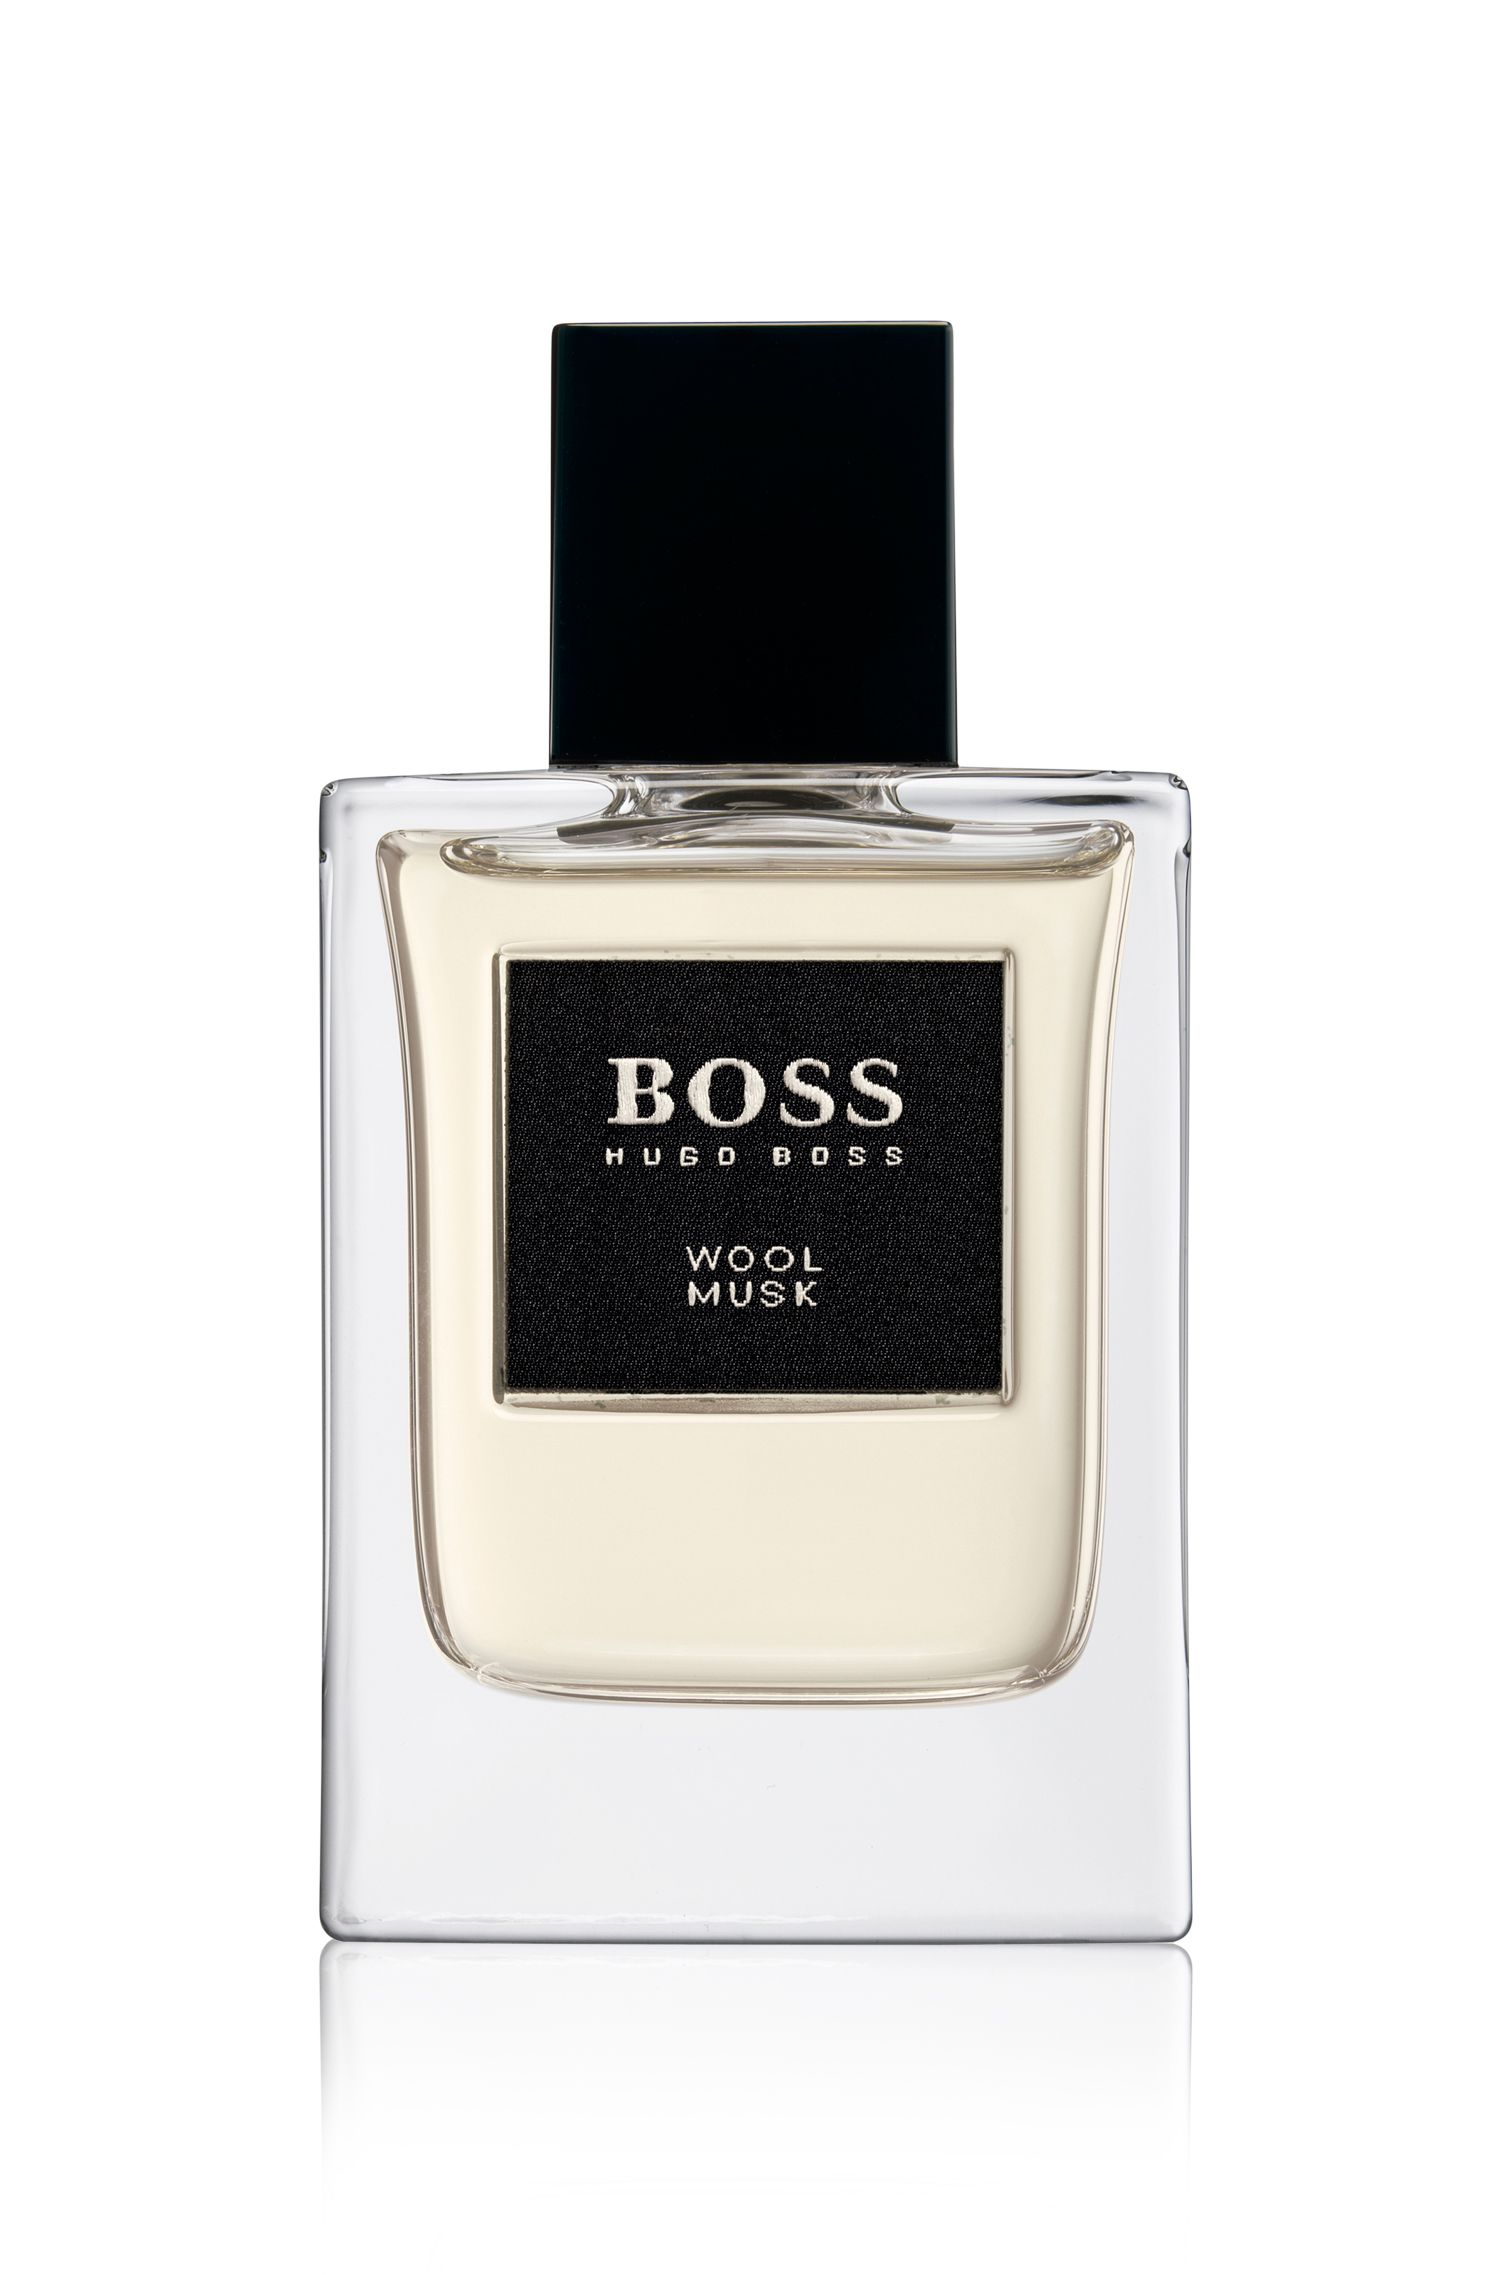 1.7 fl. oz. (50 mL) Wool & Musk Eau de Toilette | BOSS The Collection, Assorted-Pre-Pack